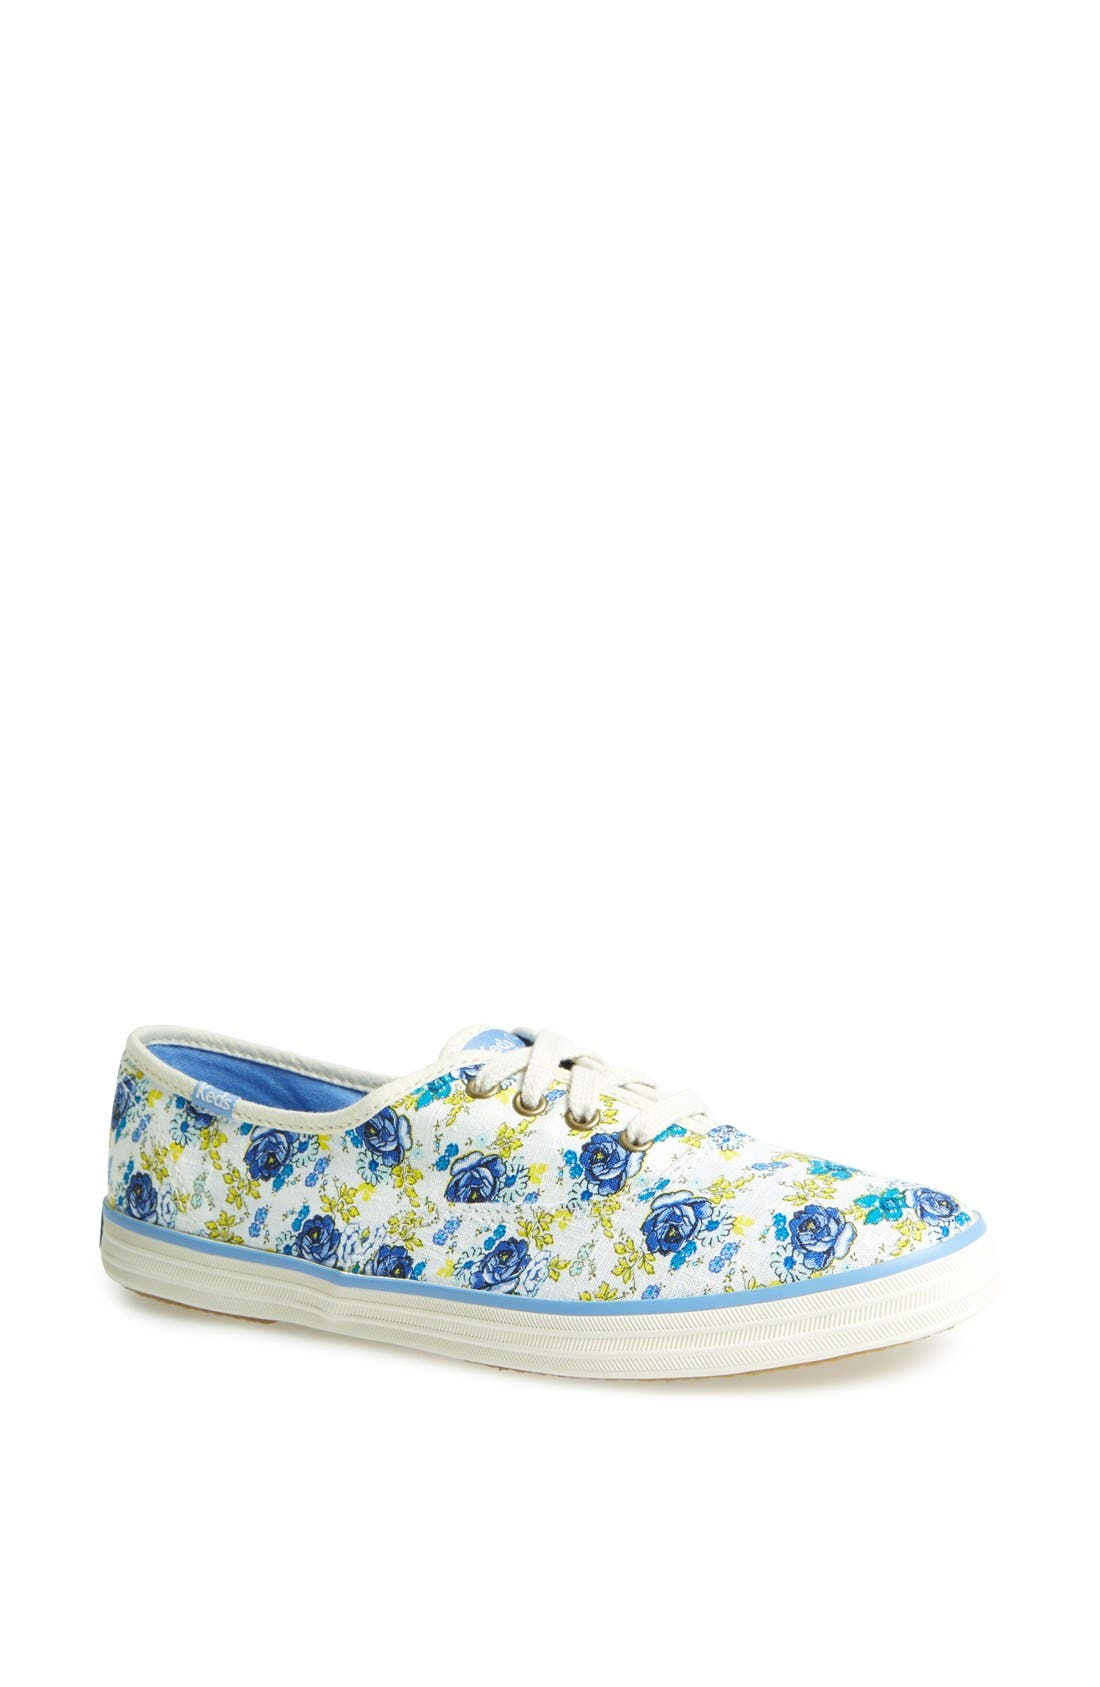 Main Image - Keds® Taylor Swift 'Champion Floral' Sneaker (Women)